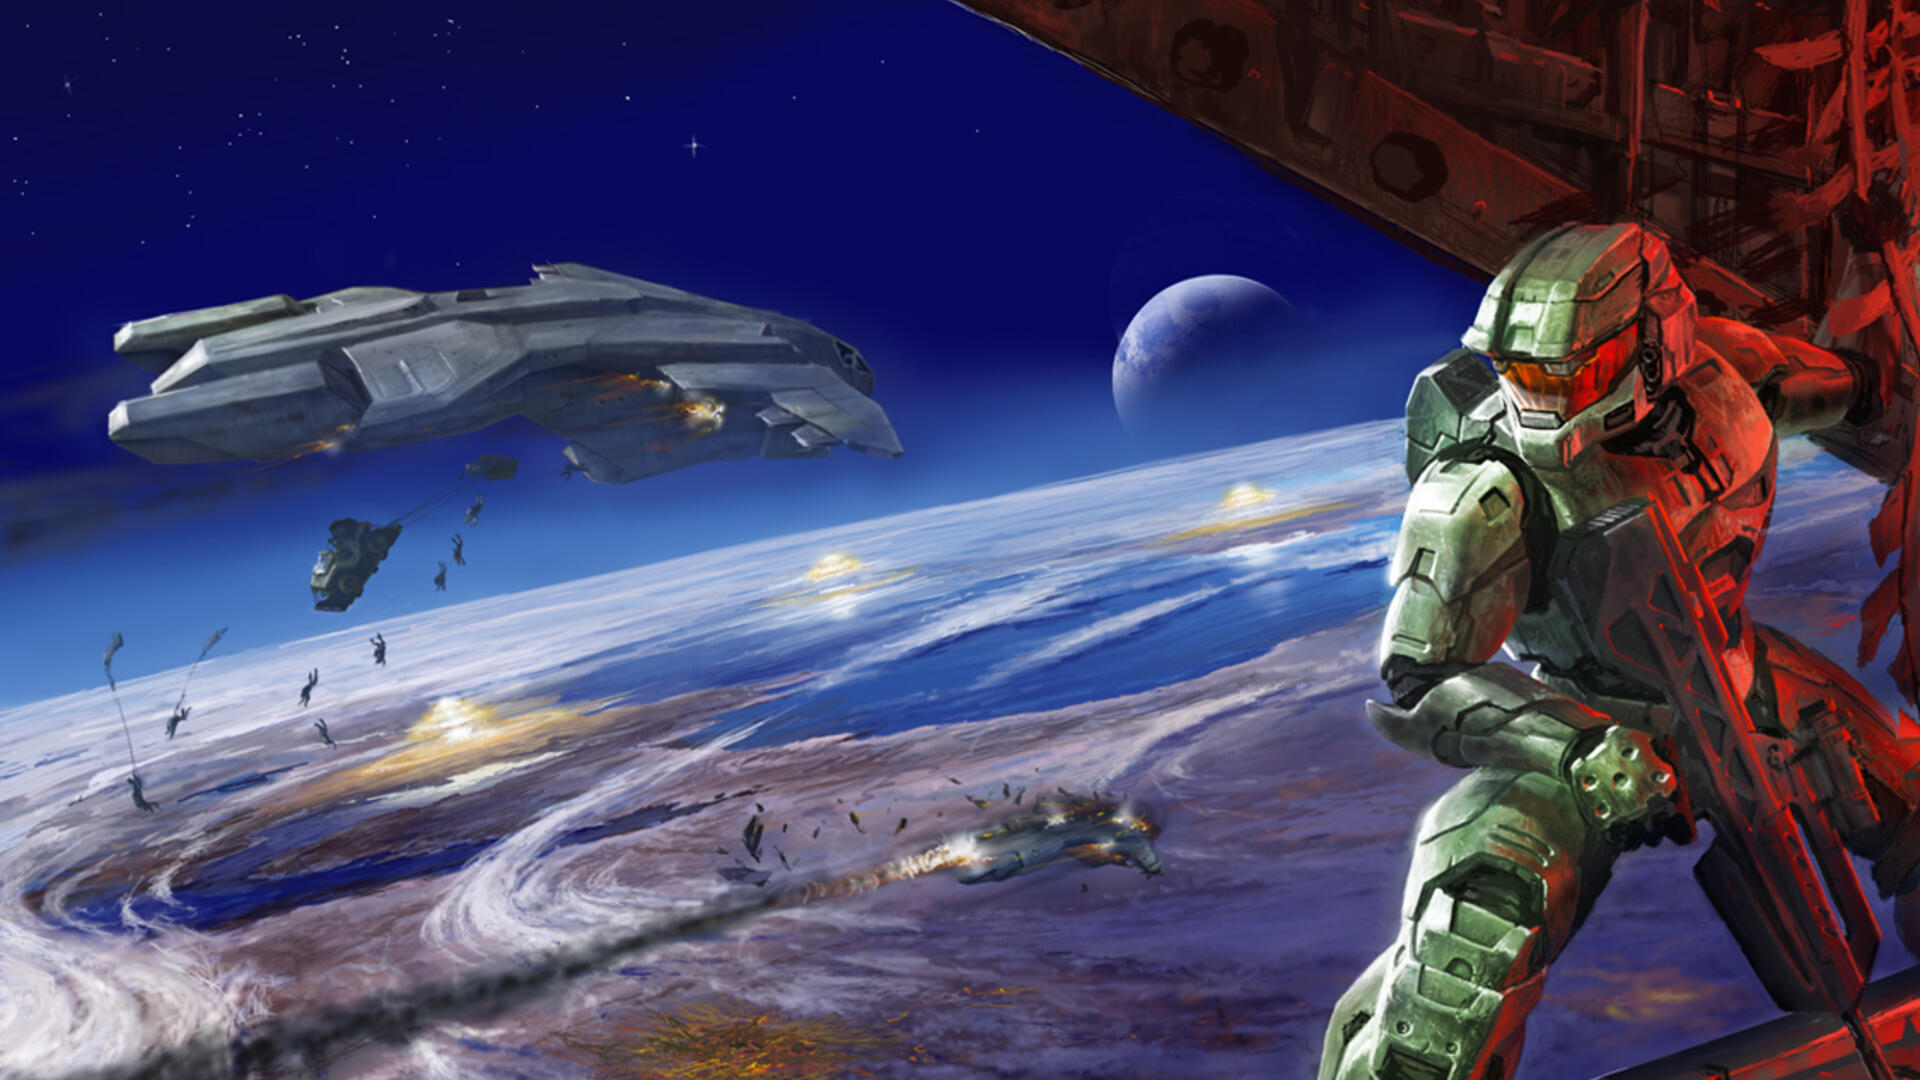 In 2004, Tens of Thousands of People Answered Payphones for Halo 2